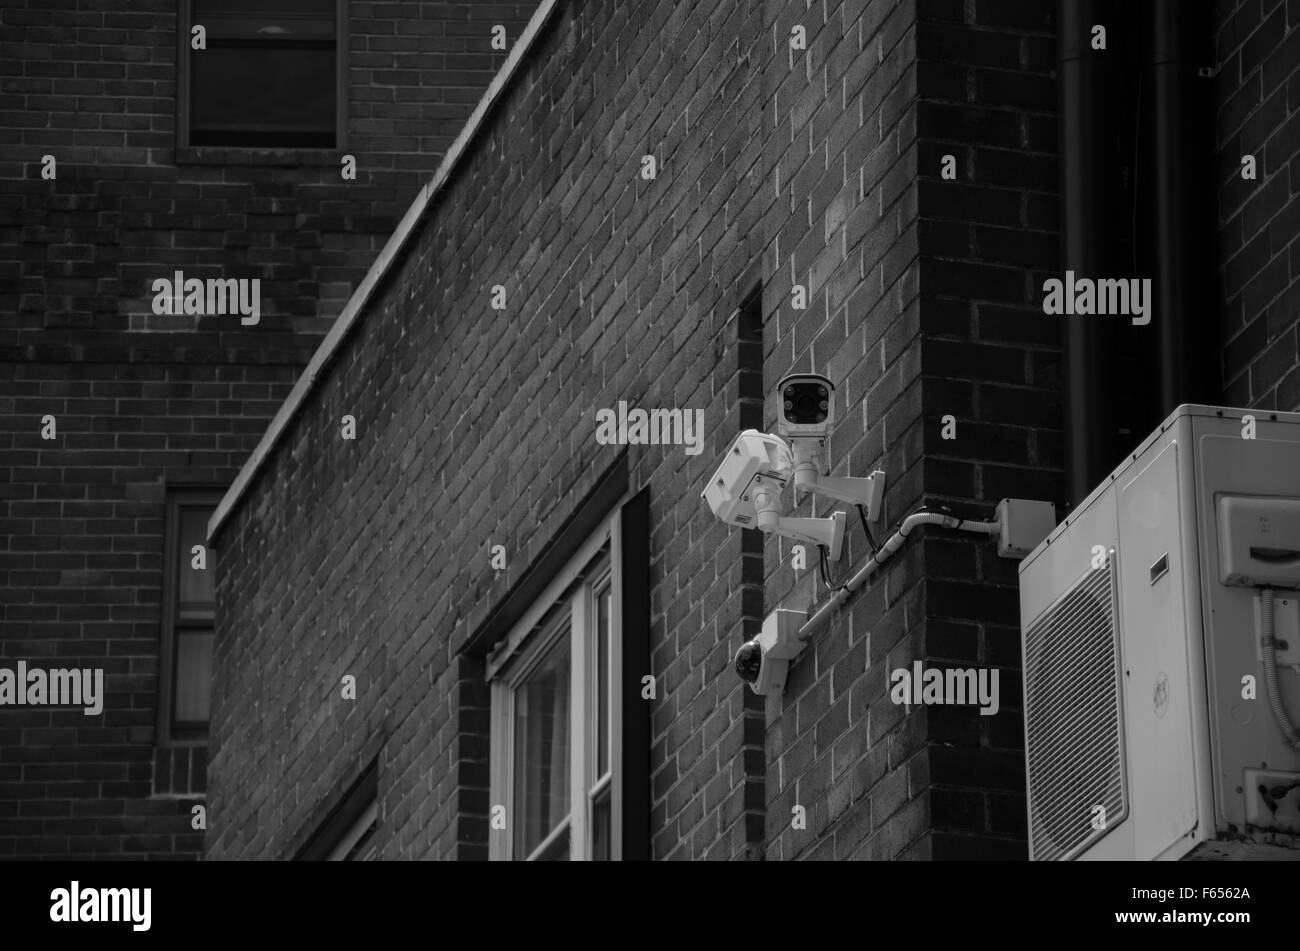 Surveillance or security CCTV camera Stock Photo